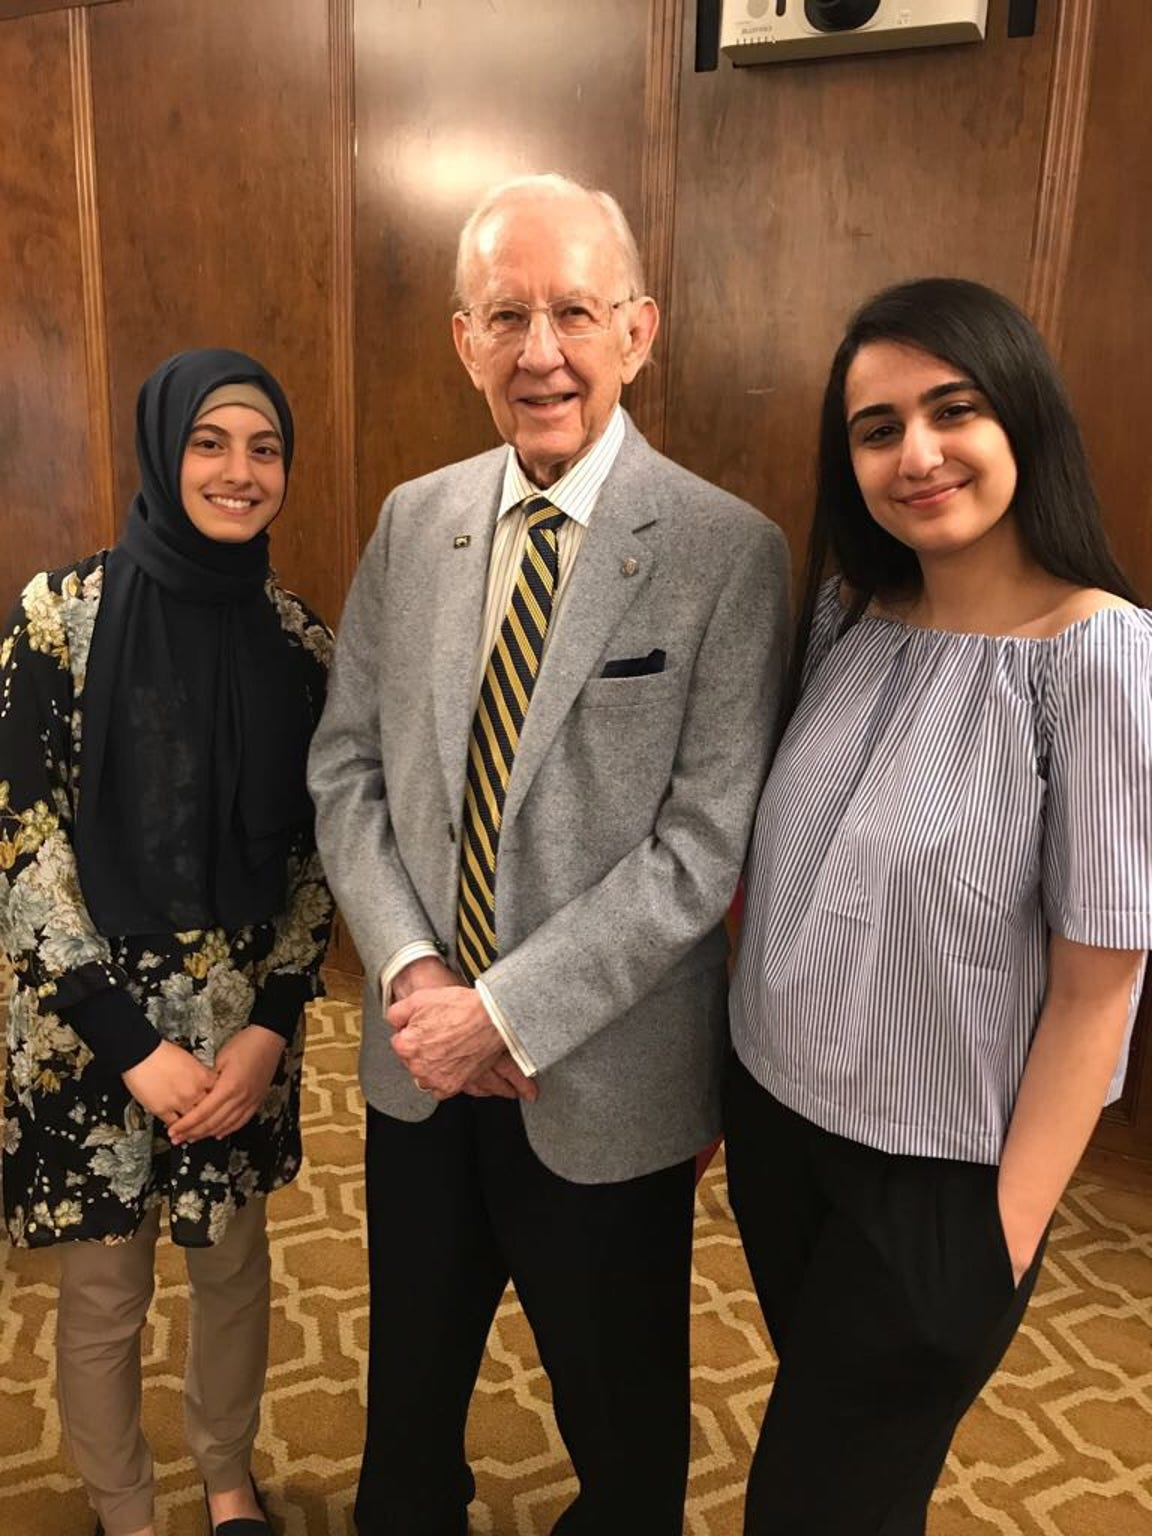 Zahra Makki, far right, with her friend Nada Jaradat and University of Michigan donor William Brehm. Brehm endowed the Brehm Scholars Program, which covers tuition costs at U-M. Both Makki and Jaradat received the scholarship.